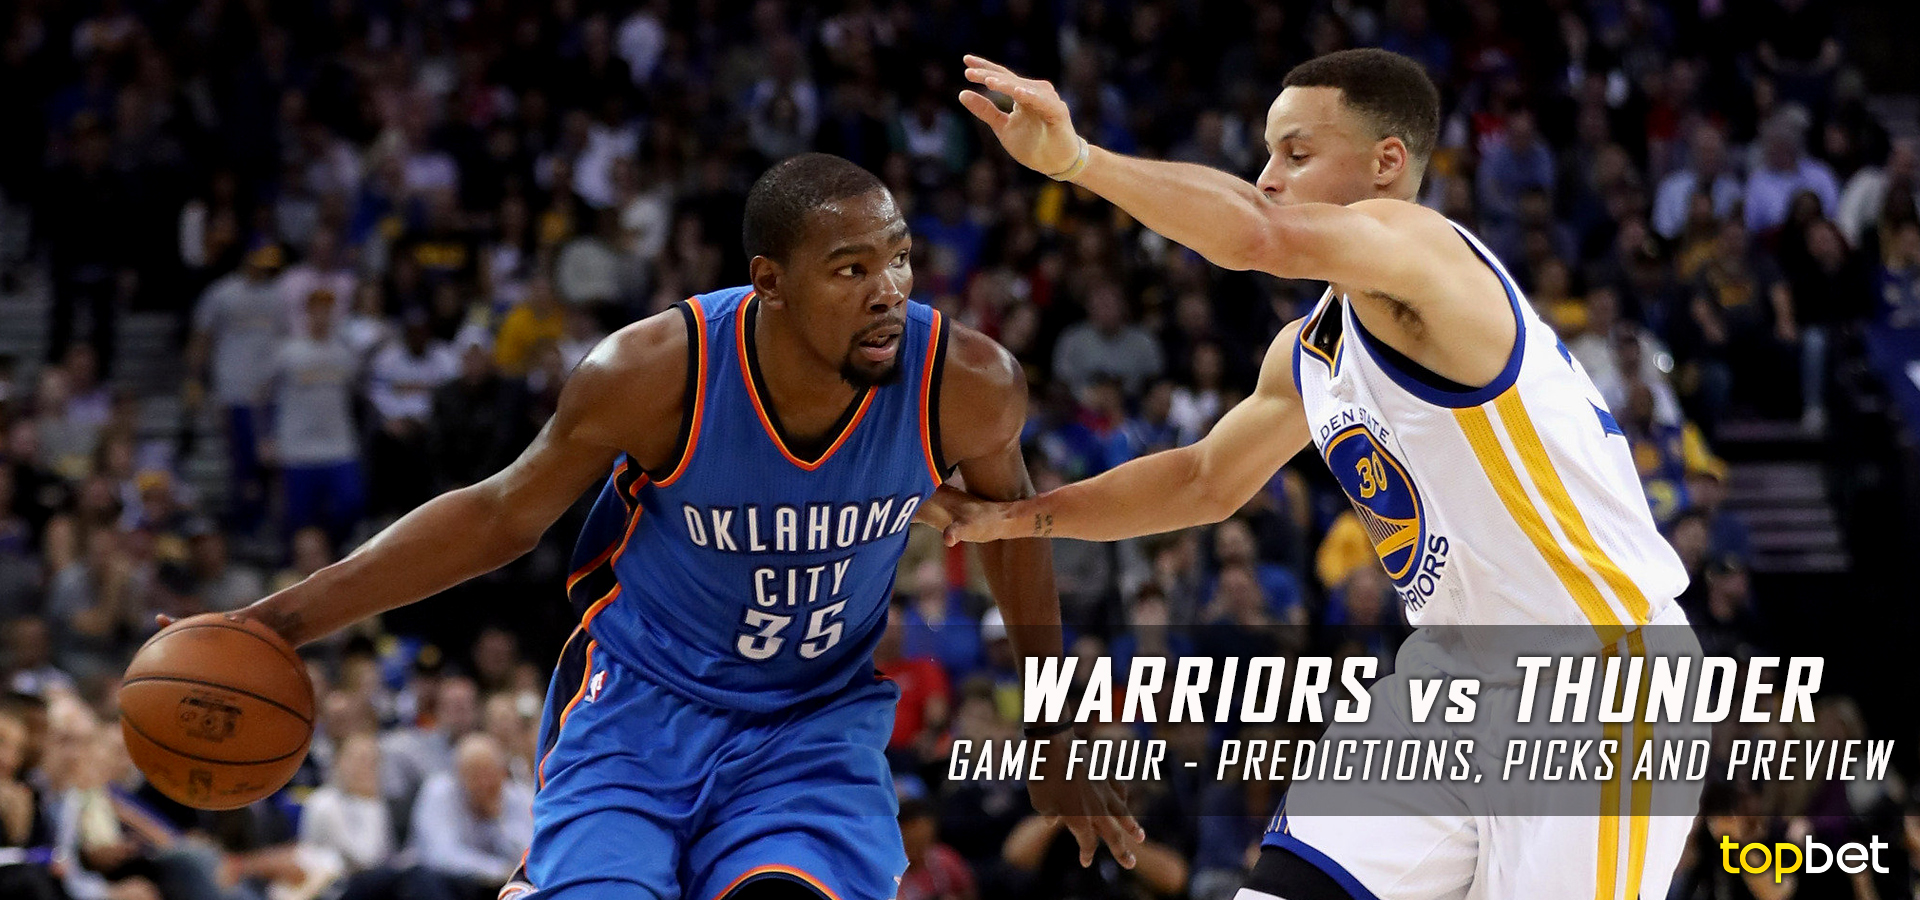 Nba Playoff Predictions Is The Warriors Run Over: Warriors Vs Thunder Series Game 4 Predictions, Picks, Odds